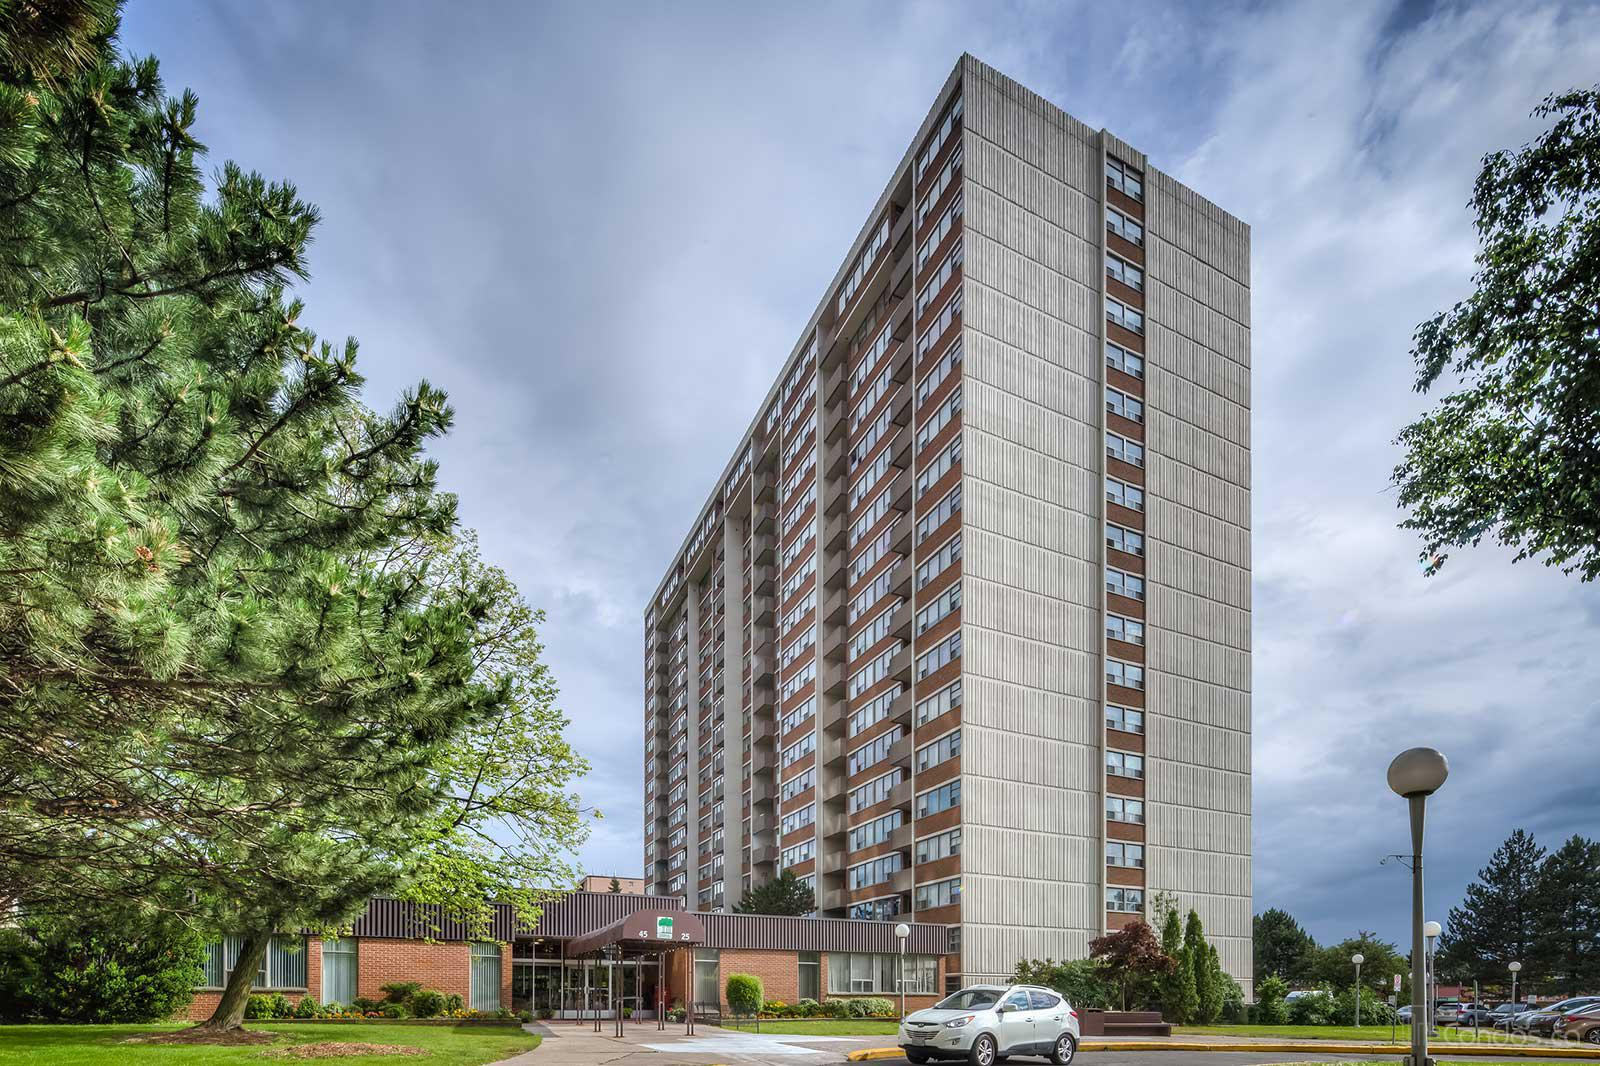 Woodlands On The Park at 25 Silver Springs Blvd, Toronto 1